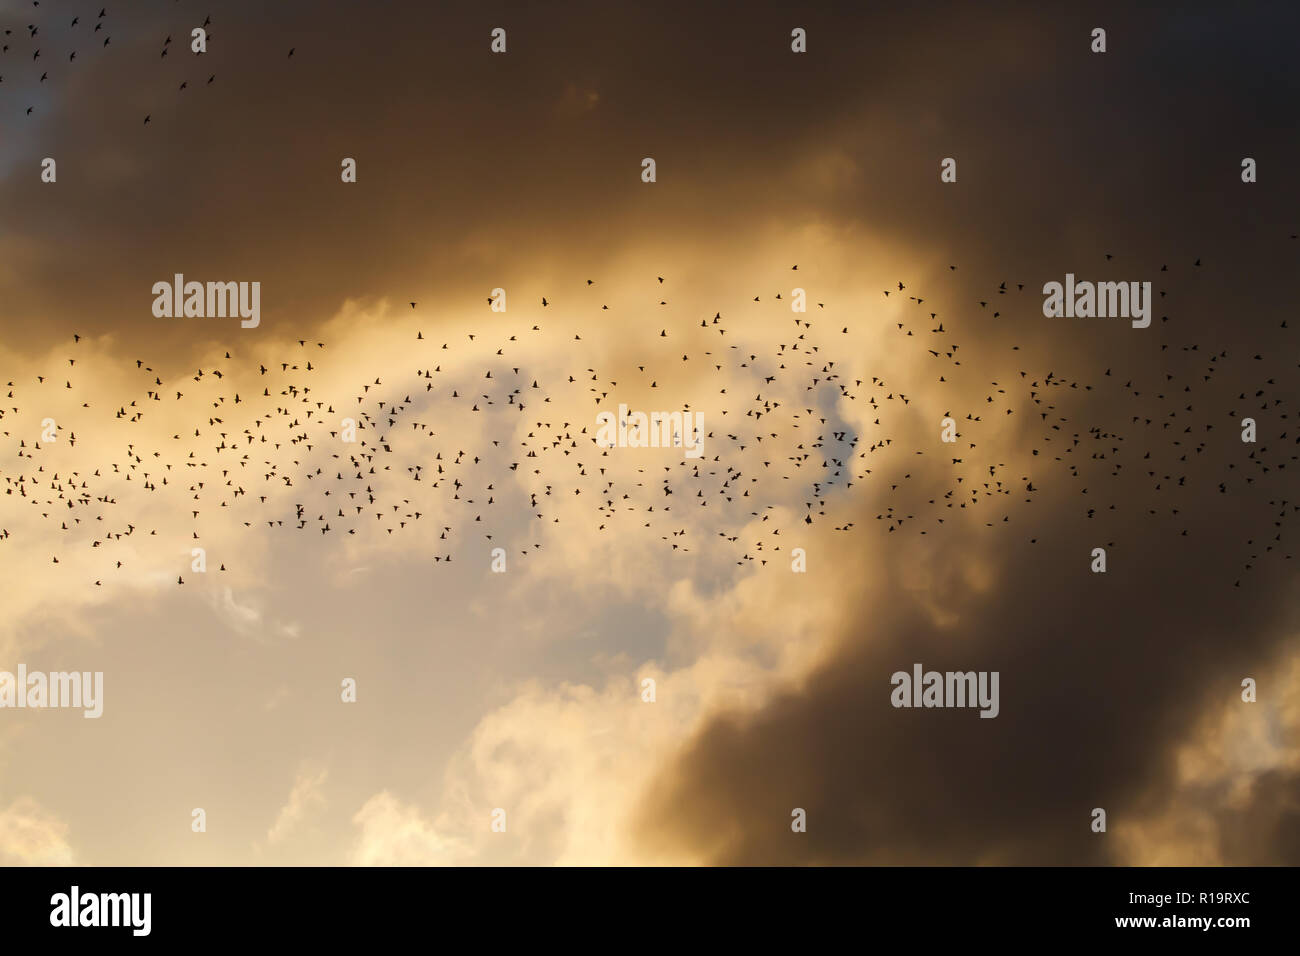 Aberystwyth,UK,10th November 2018,Starling Murmuration in Aberystwyth, Wales, as the sunsets on a windy Autumn afternoon Hundreds of starlings form amazing patterns and shapes as they group together before going under the pier to roost for the night.Credit: Keith Larby/Alamy Live News Stock Photo